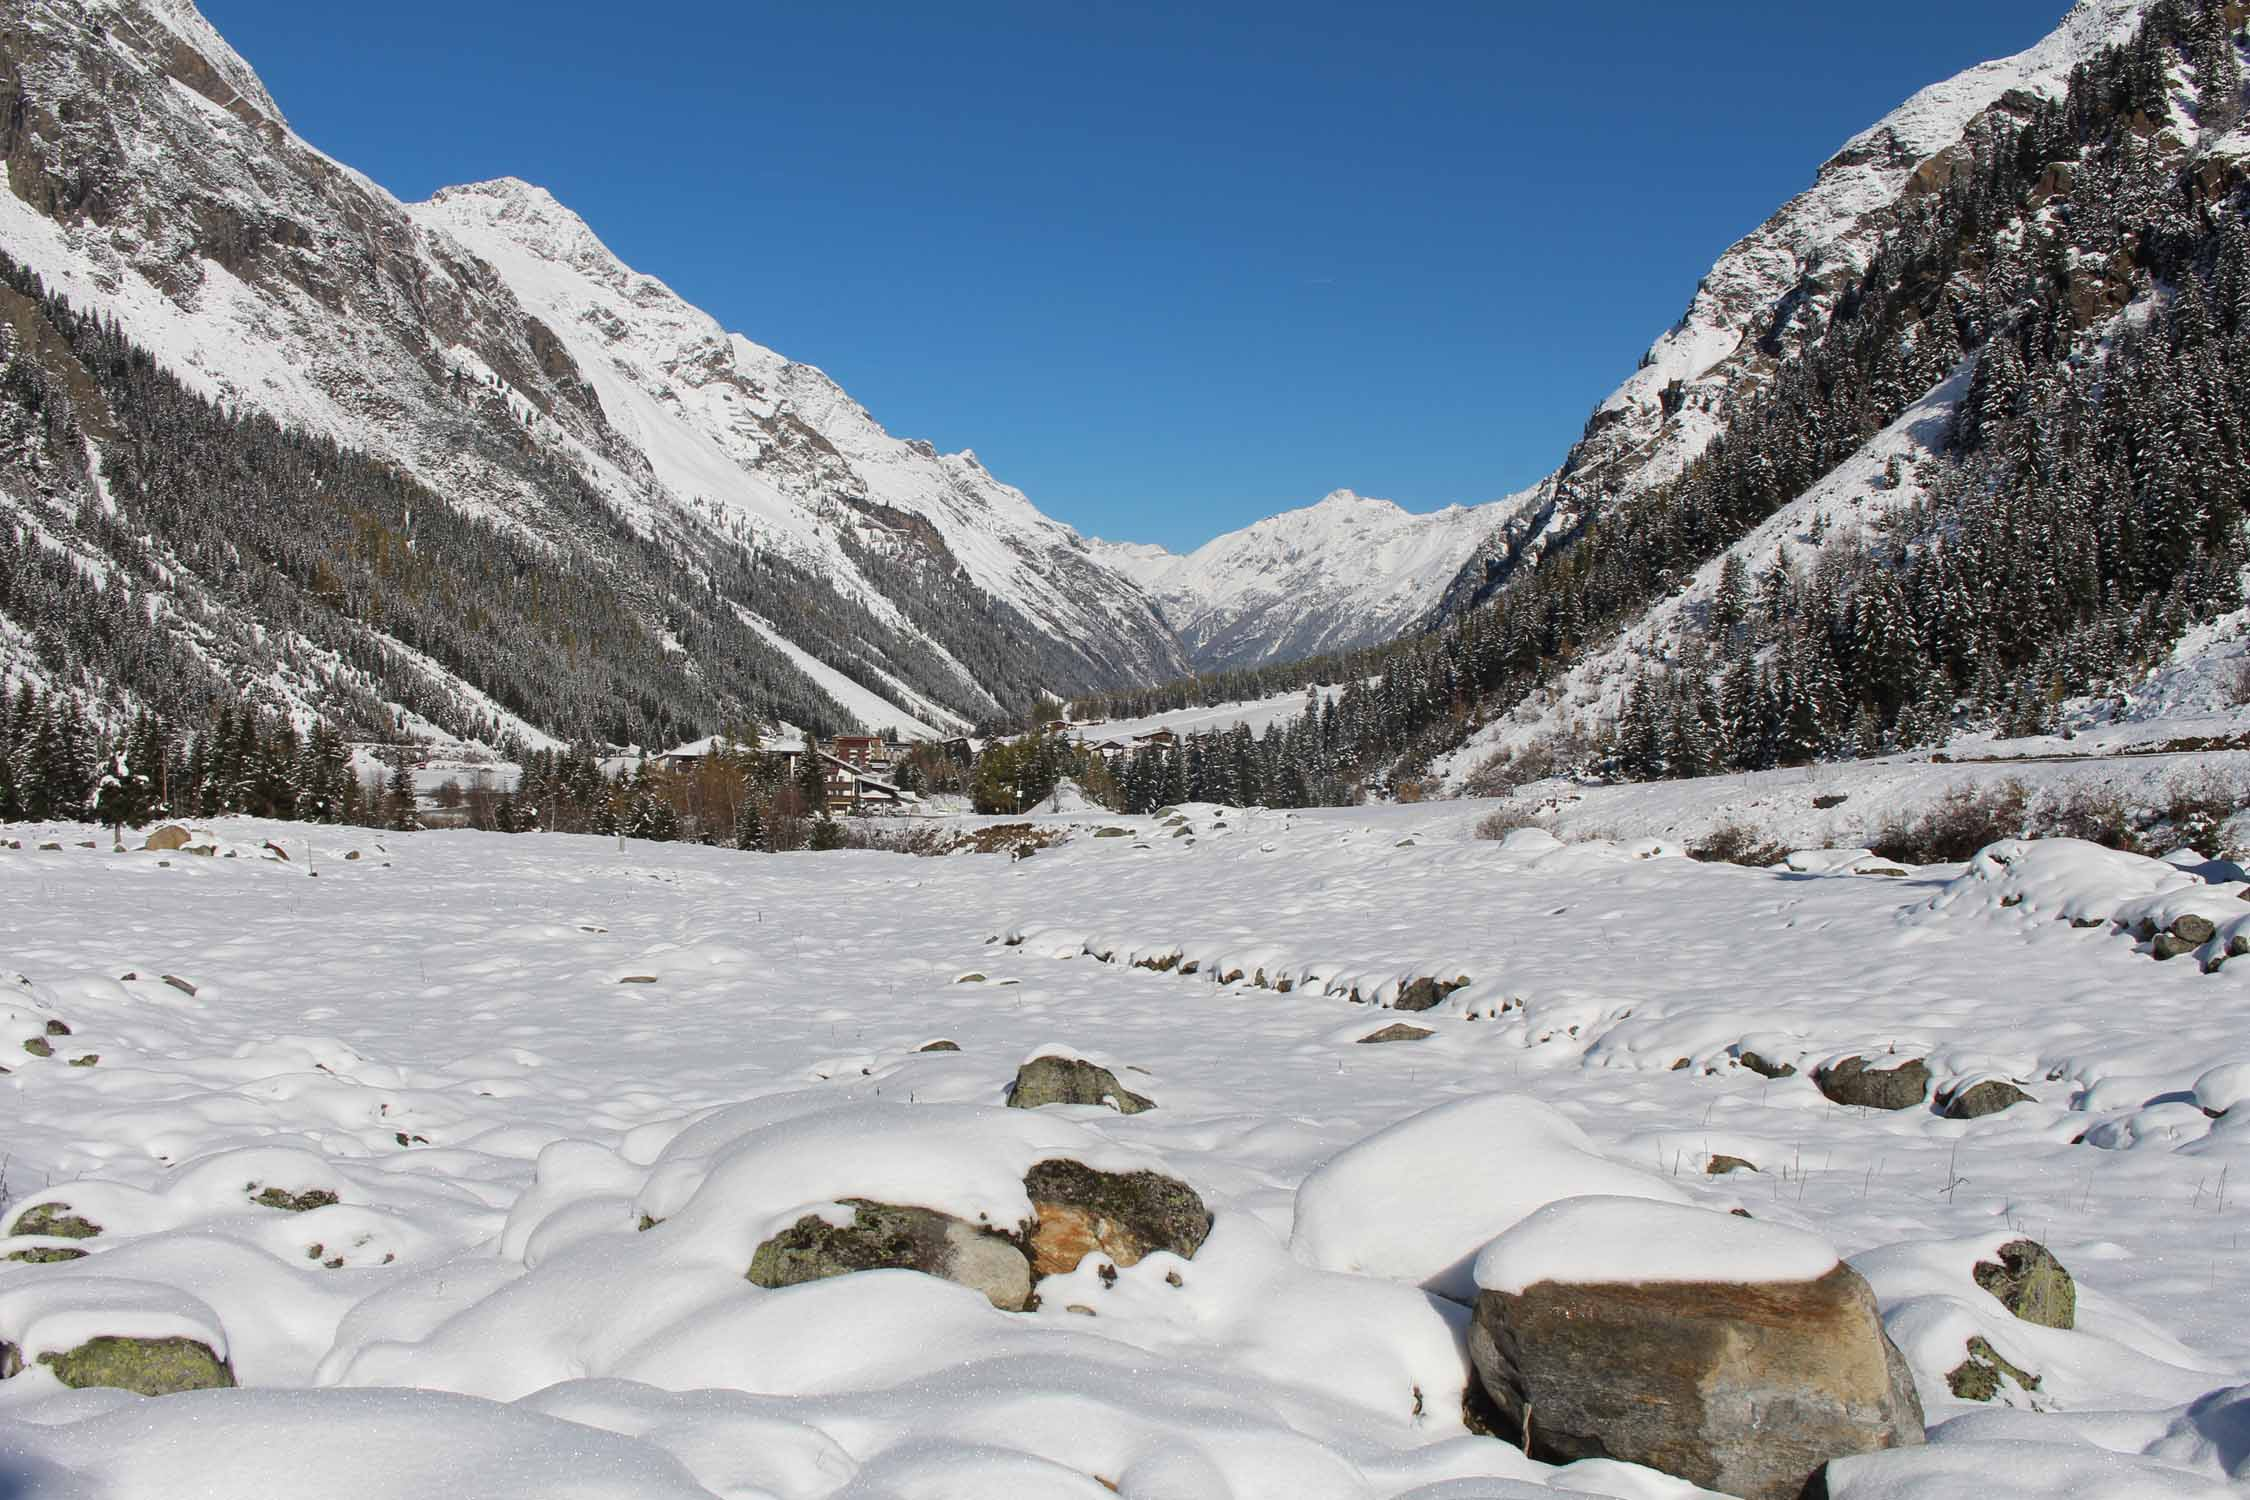 Tirol, landscape and snow near Mittelberg